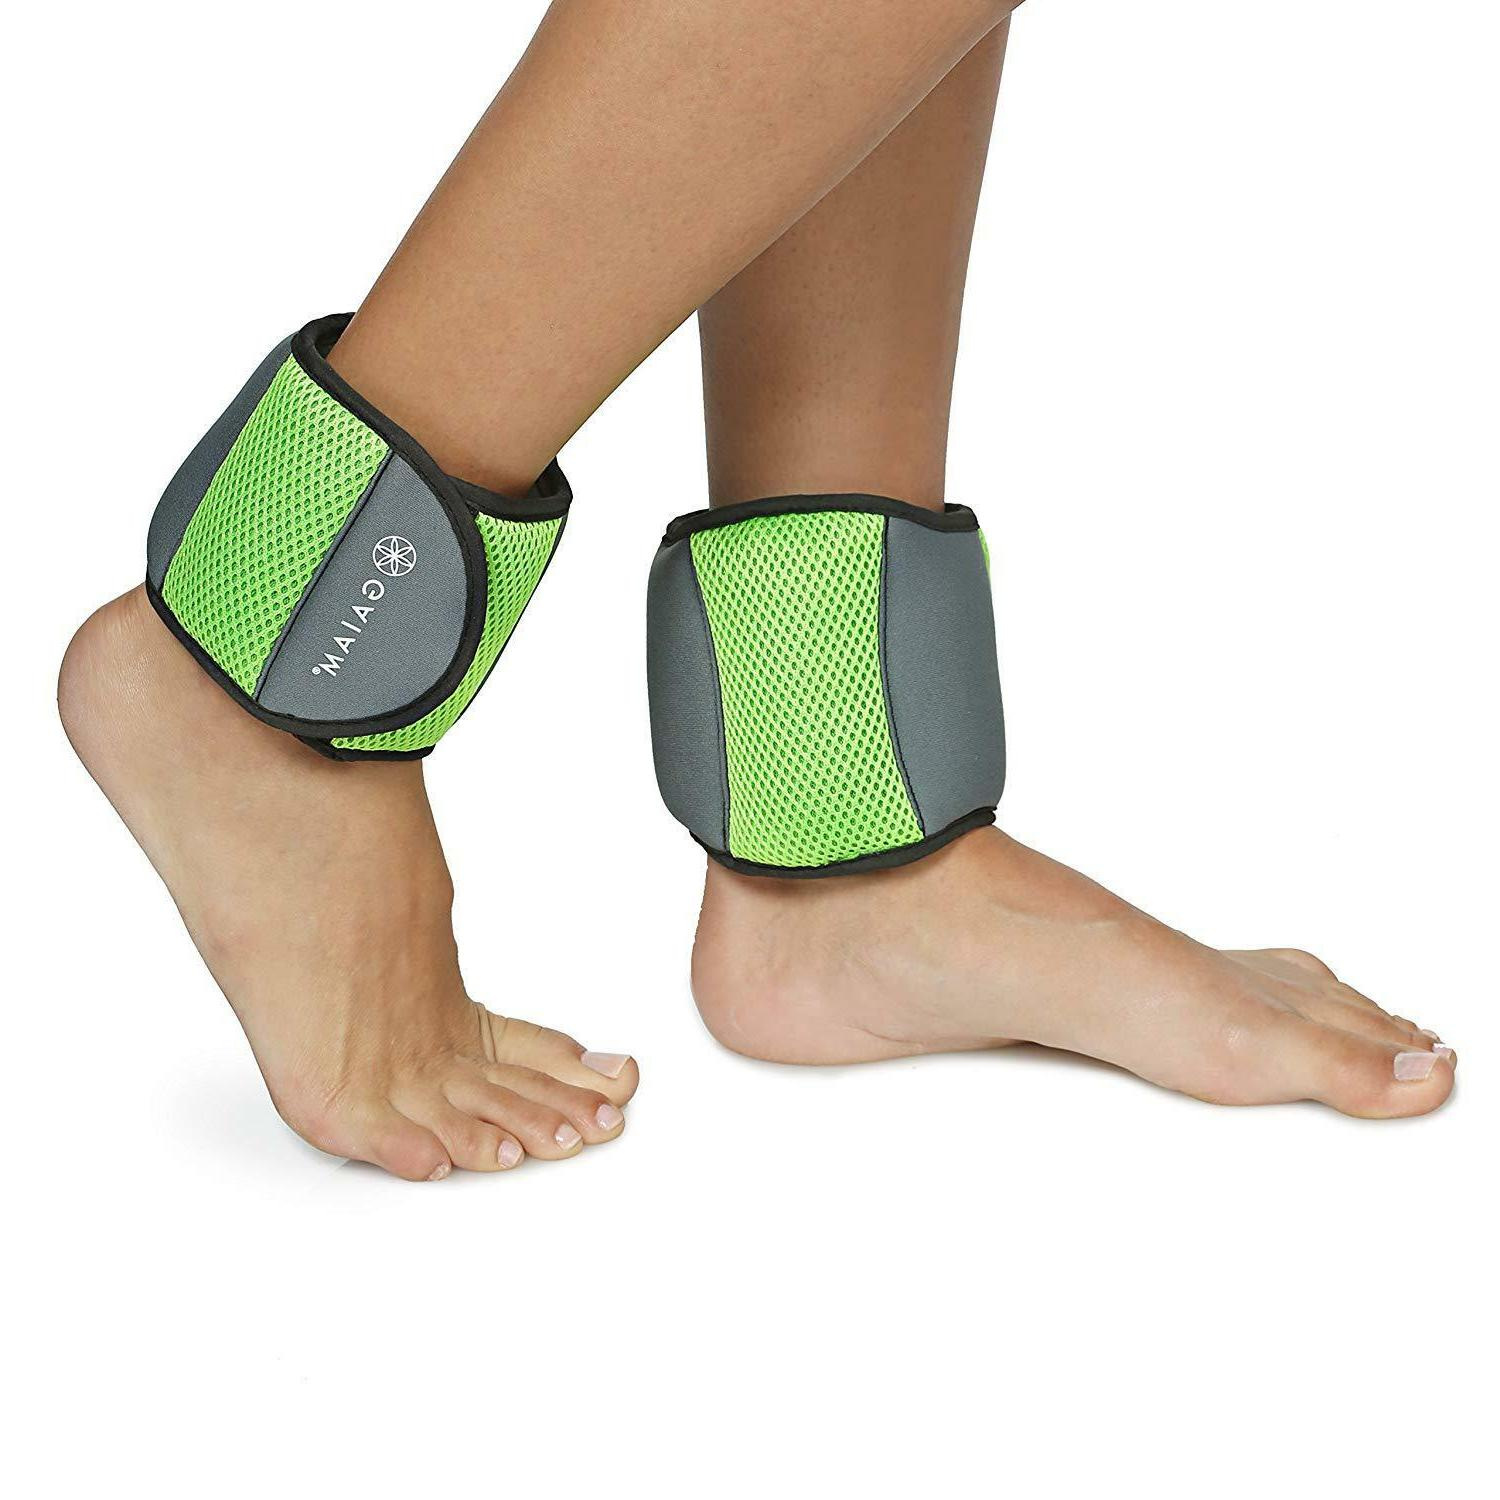 5lb Gaiam Ankle Weights FreeShip